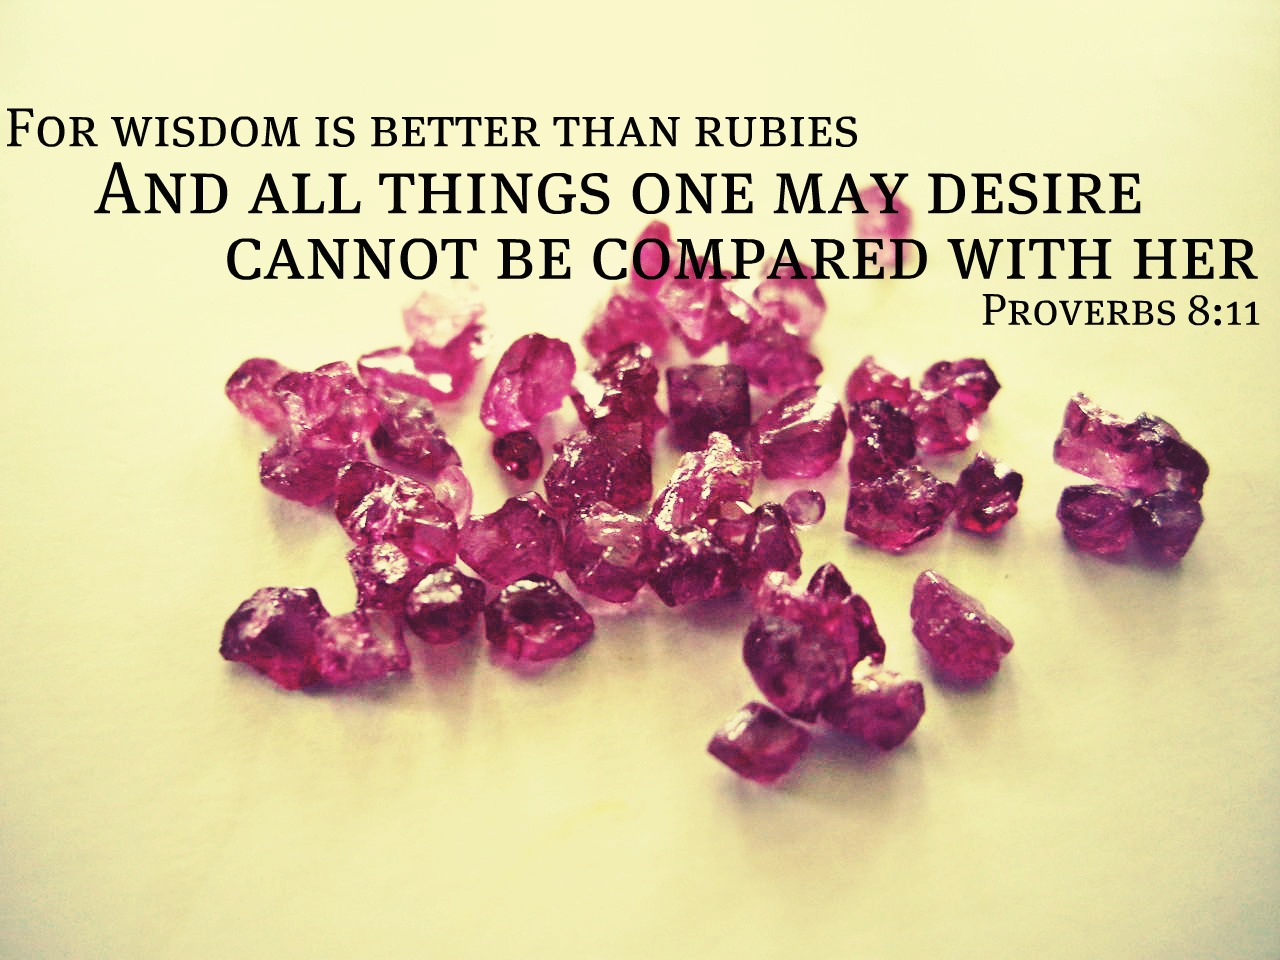 Day After Day Wisdom Is Better Than Rubies